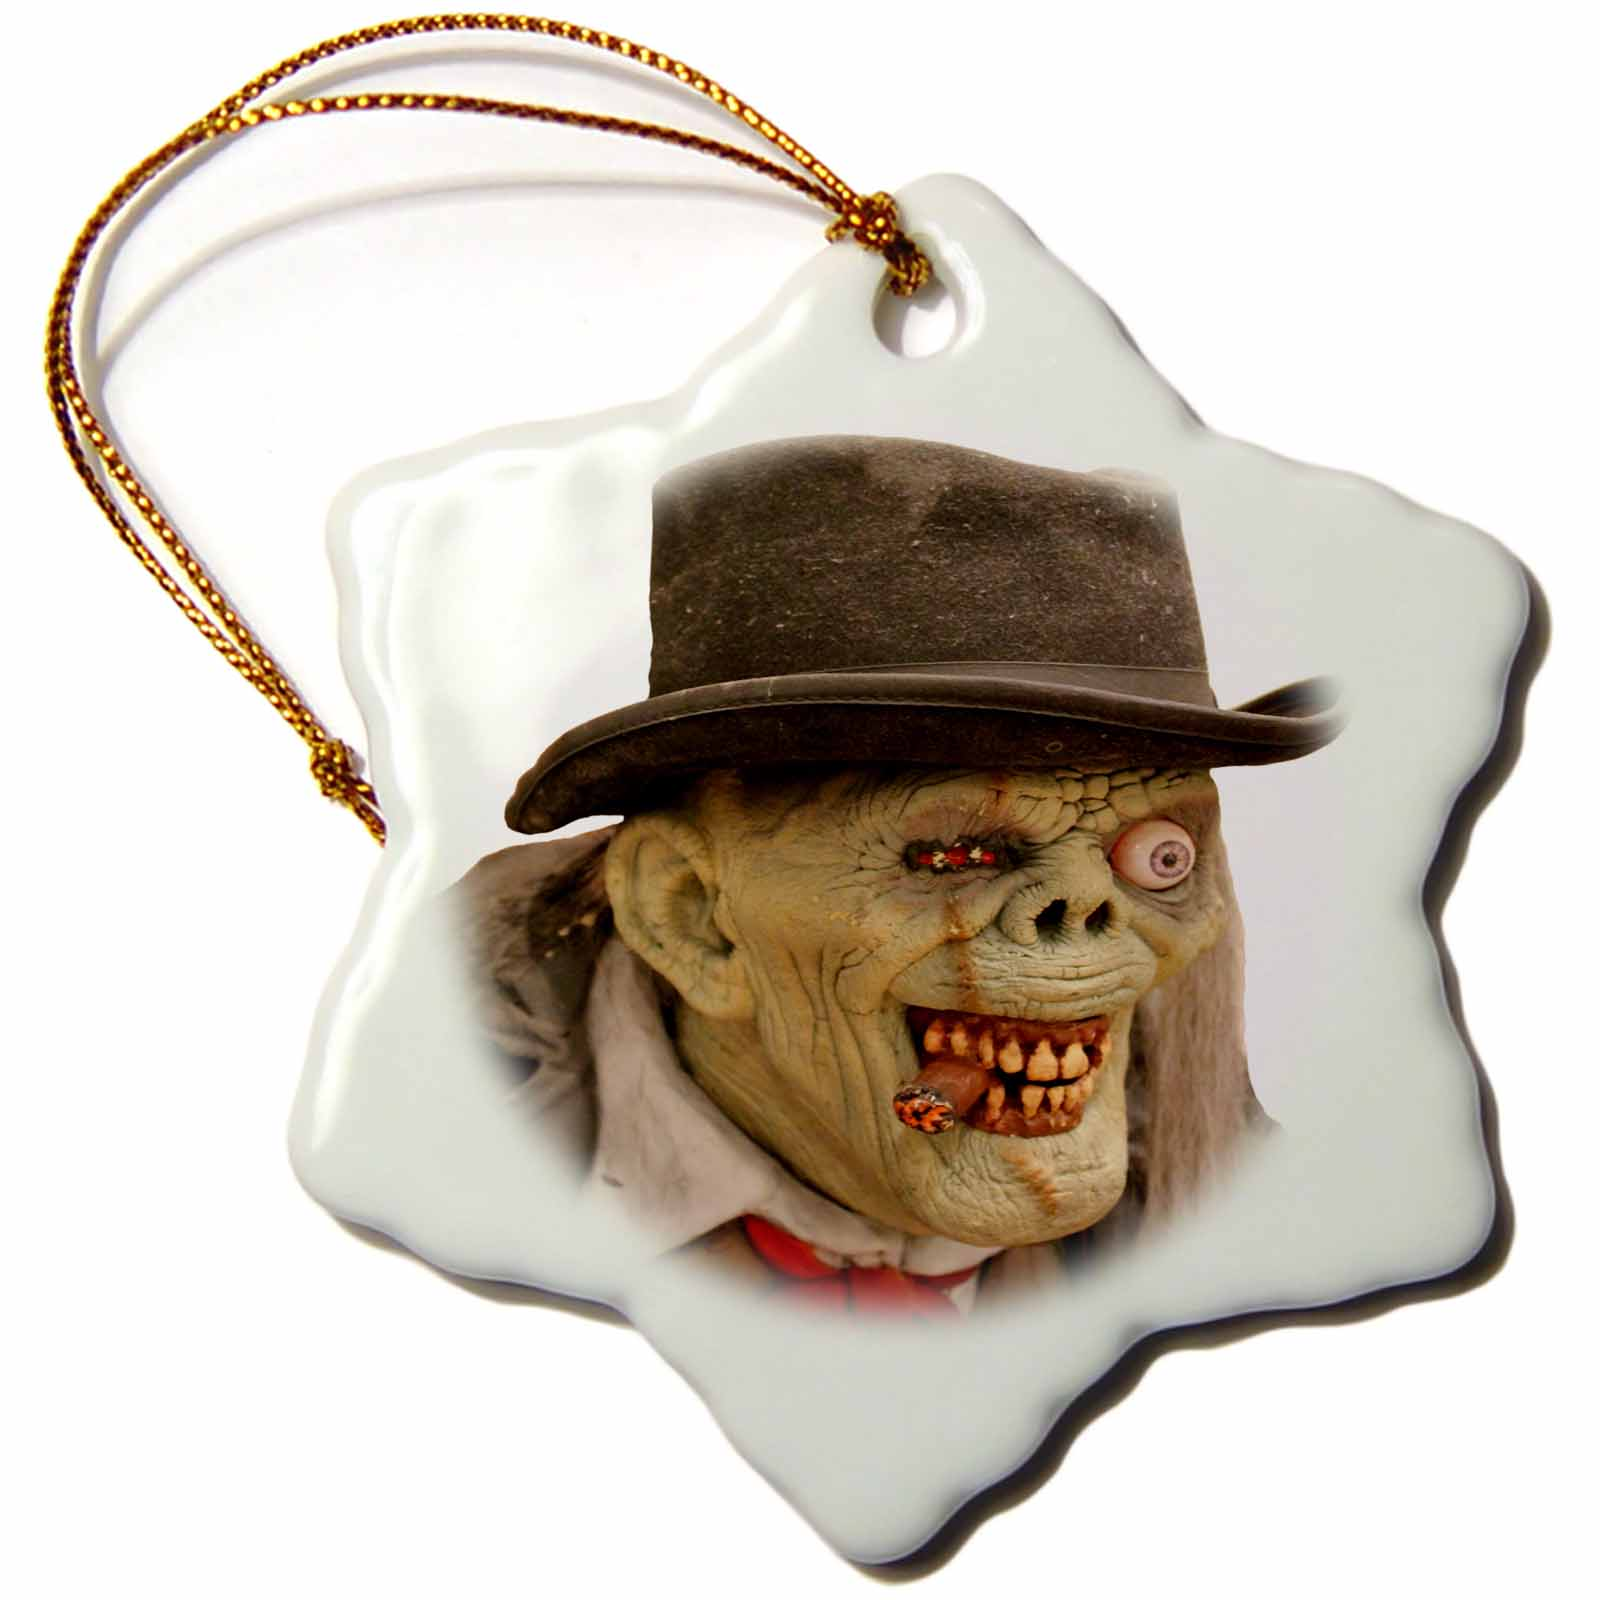 3dRose Creepy Old Man and Monster Face Costume, Snowflake Ornament, Porcelain, 3-inch